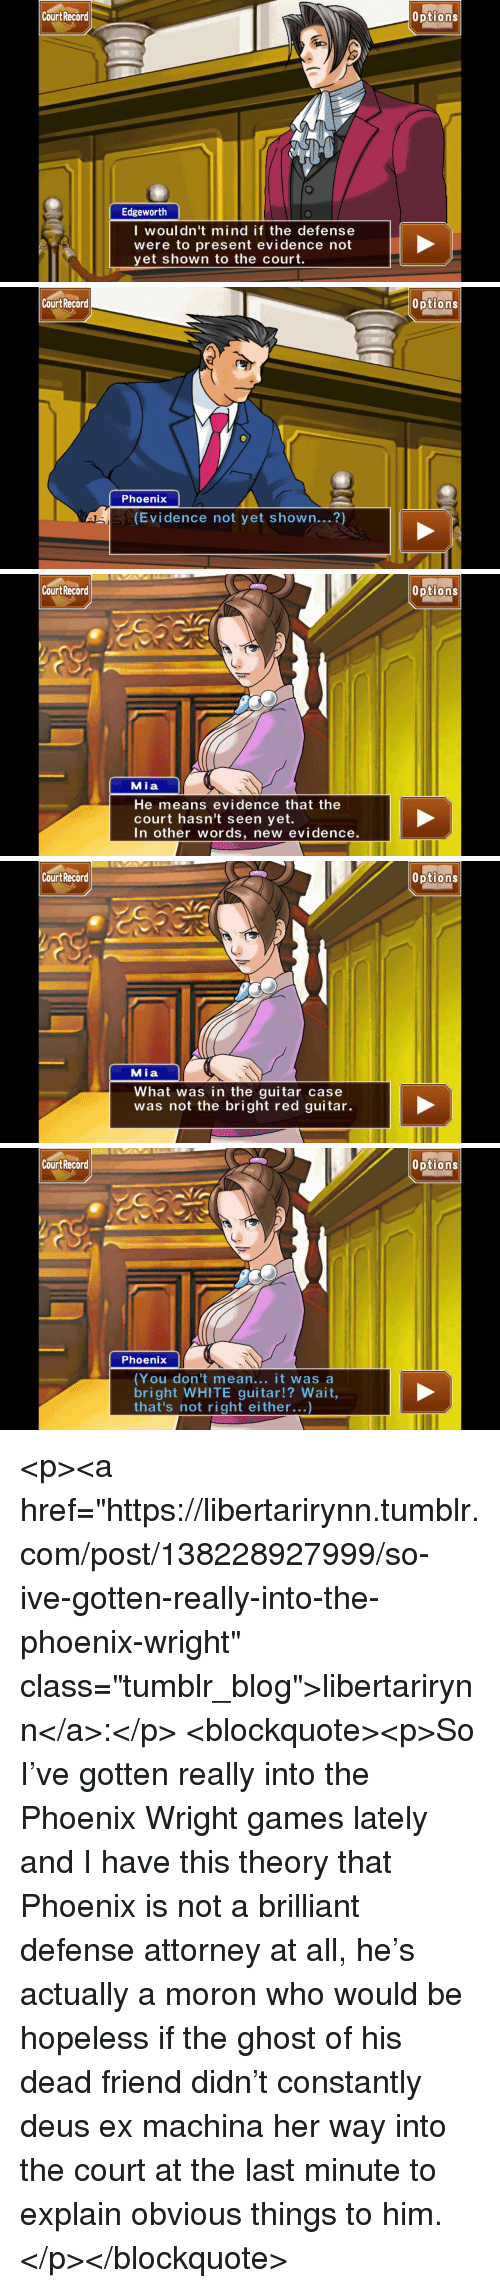 "Tumblr, Blog, and Ex Machina: Court Recard  0ptions  Edgeworth  I woul dn't mind if the defense  were to present evidence not  yet shown to the court.   Cou  rt Record  Options  Phoenix  (Evidence not yet shown...?)   Cou  rt Record  Options  Mia  He means evidence that the  court hasn't seen yet.  In other words, new evidence.   Cou  rt Record  Options  Mia  What was in the guitar case  was not the bright red guitar.   Cou  rt Record  Options  Phoenix  (You don't mean... it was a  bright WHITE guitar!? Wait  that's not right either...) <p><a href=""https://libertarirynn.tumblr.com/post/138228927999/so-ive-gotten-really-into-the-phoenix-wright"" class=""tumblr_blog"">libertarirynn</a>:</p>  <blockquote><p>So I've gotten really into the Phoenix Wright games lately and I have this theory that Phoenix is not a brilliant defense attorney at all, he's actually a moron who would be hopeless if the ghost of his dead friend didn't constantly deus ex machina her way into the court at the last minute to explain obvious things to him.</p></blockquote>"